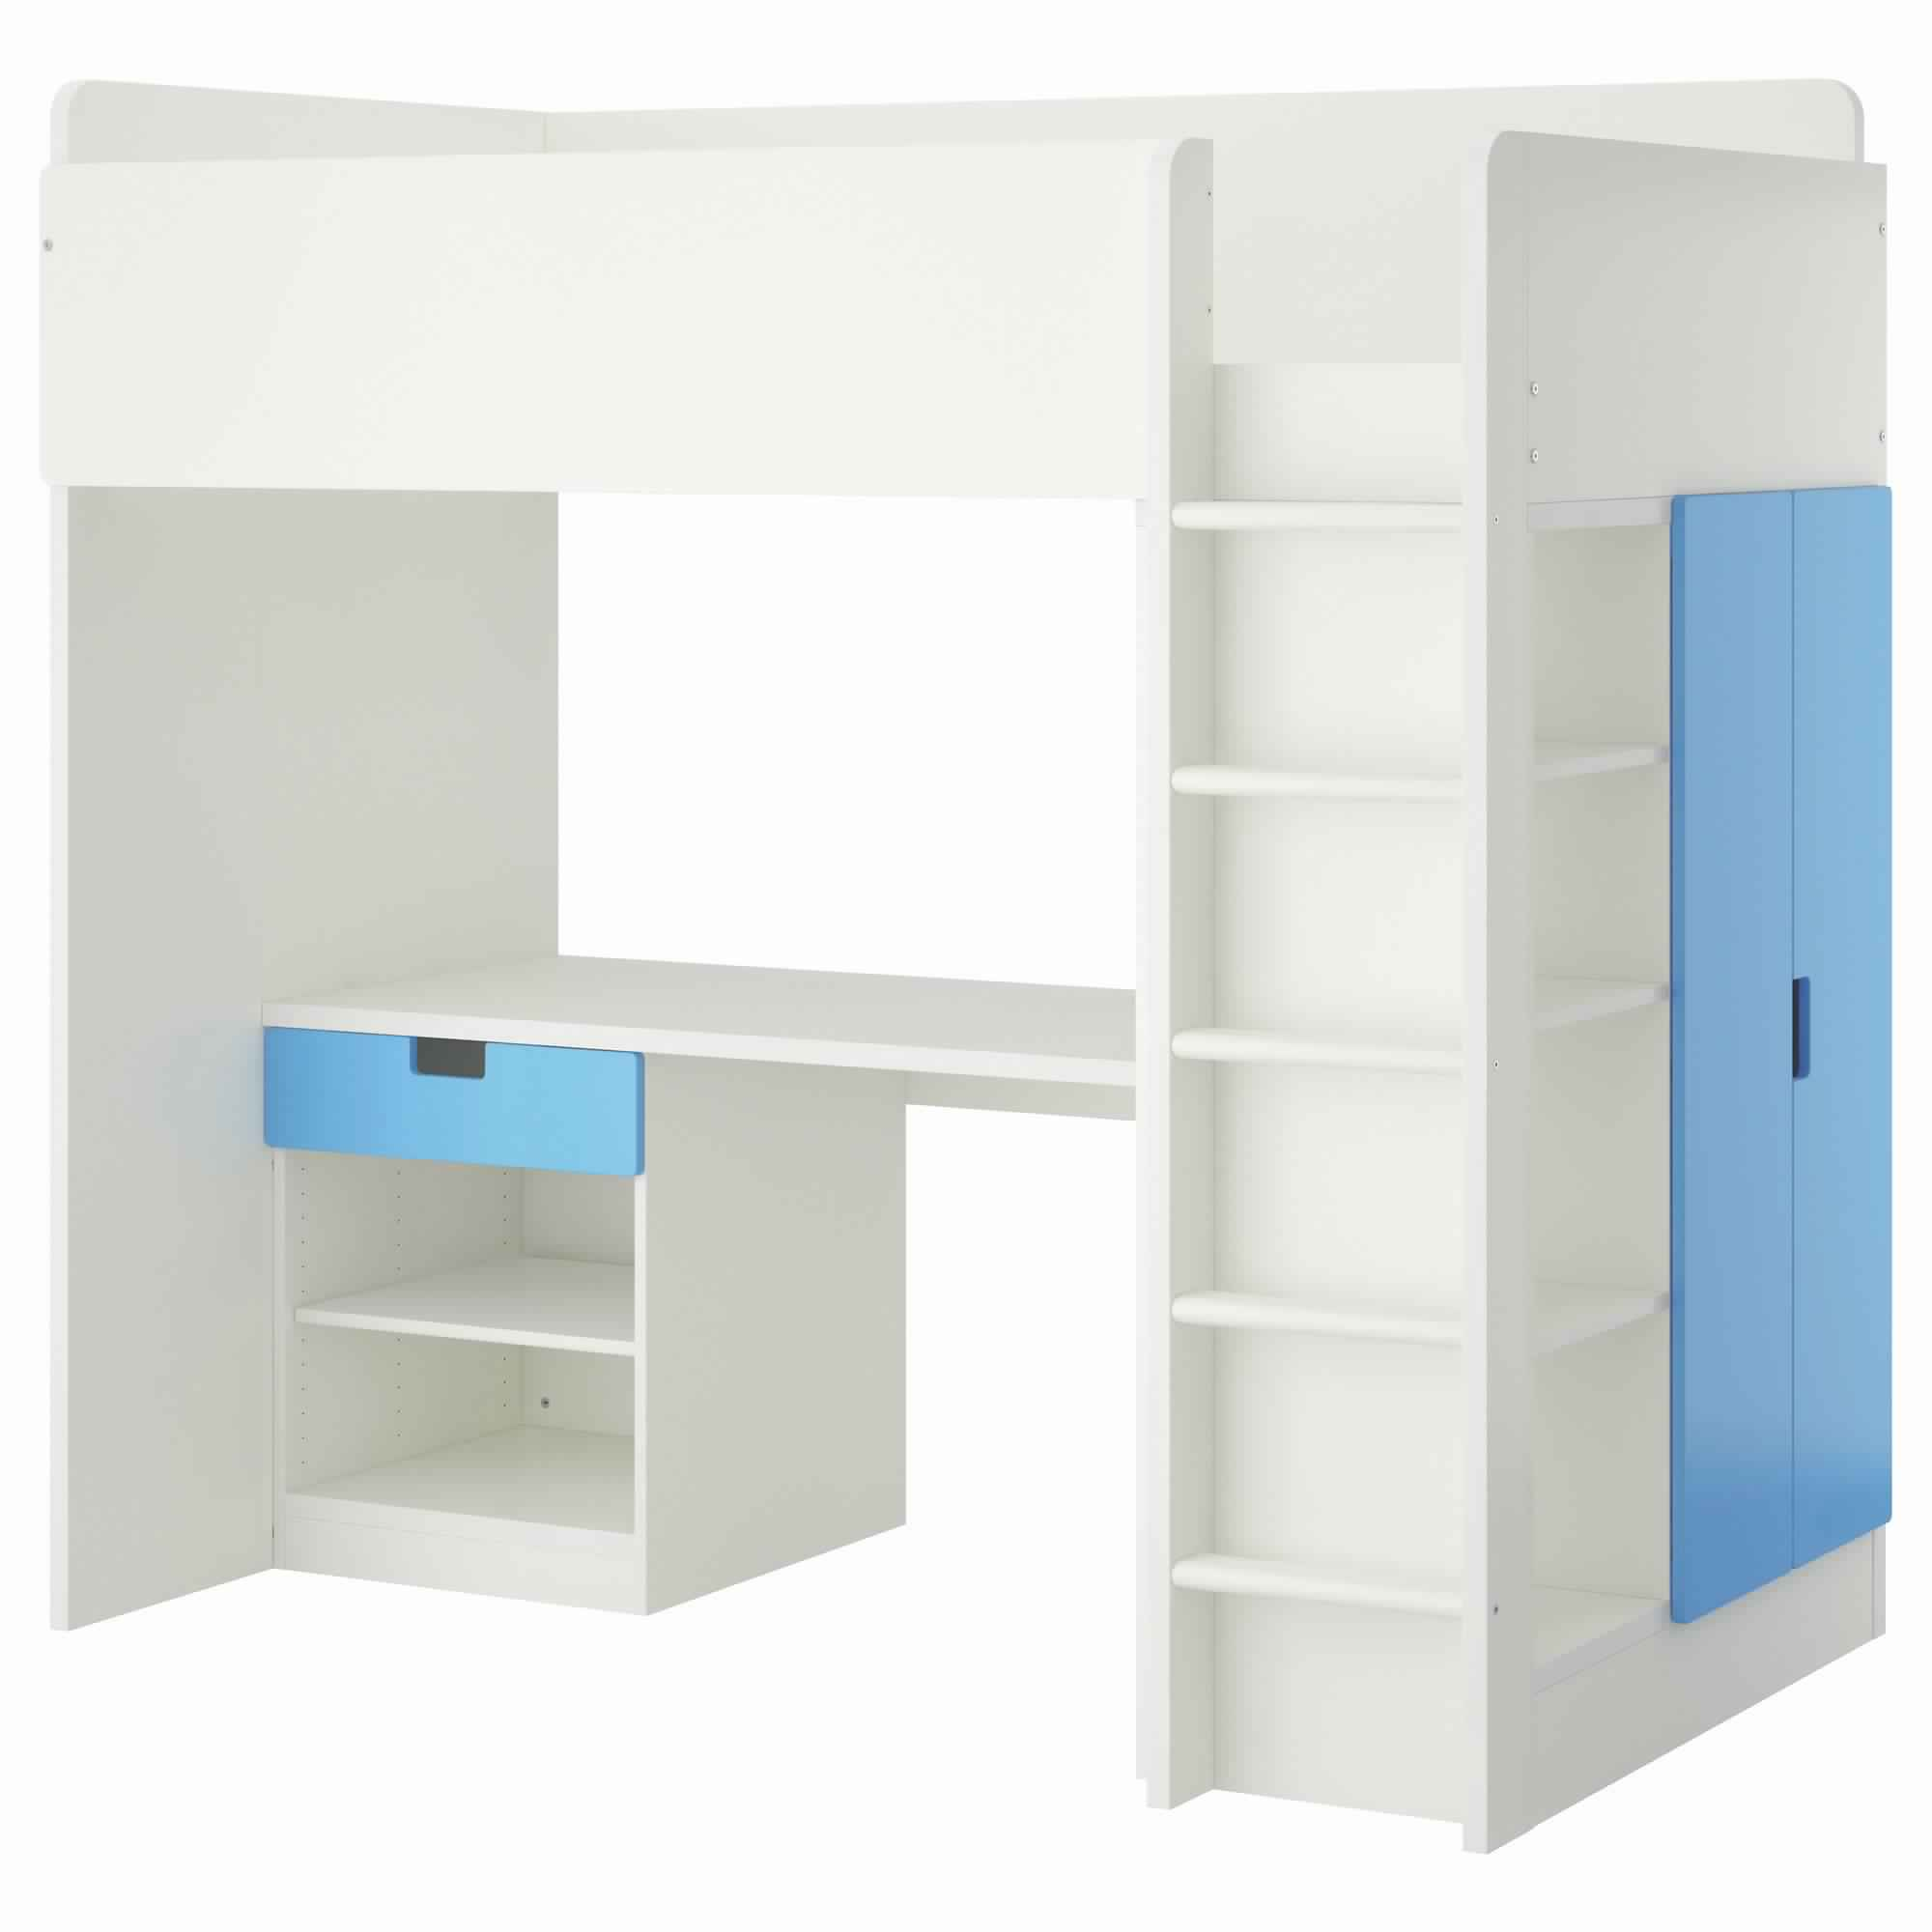 Bunk Bed with Desk and Storage space